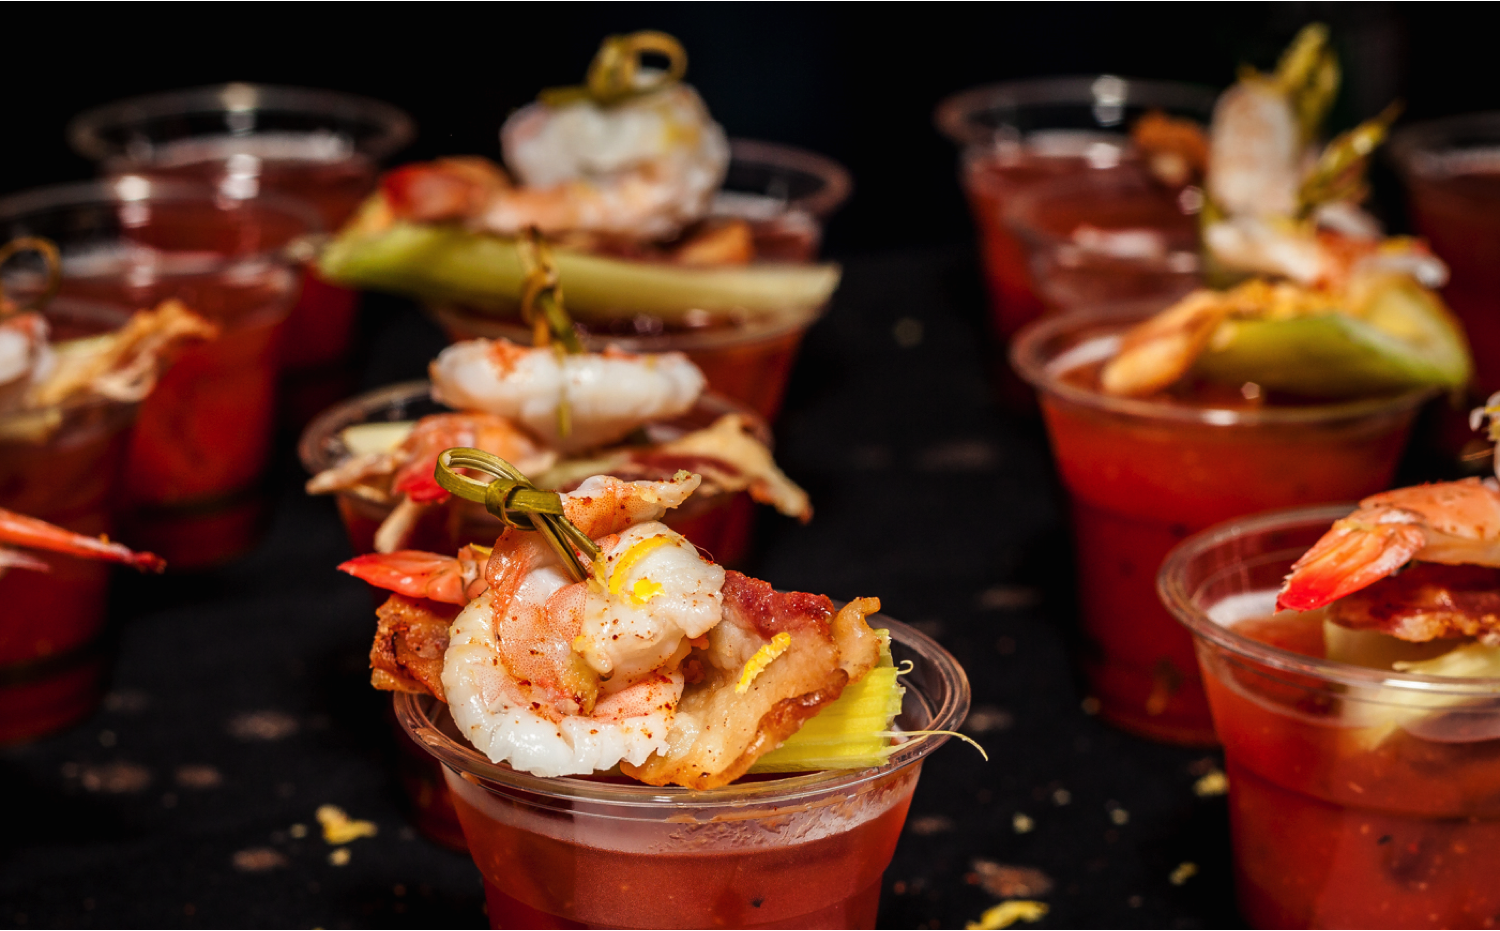 Bloody Mary festival this weekend in Brooklyn.